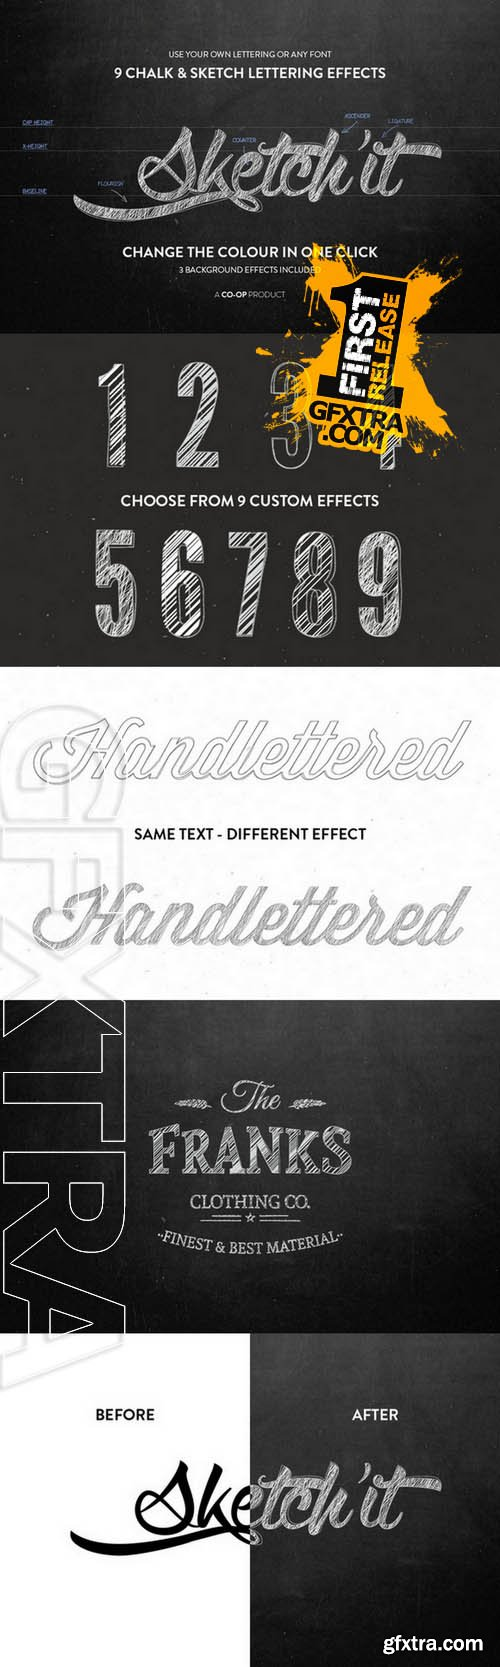 Sketch'it - Chalk and Sketch effects - Creativemarket 82589